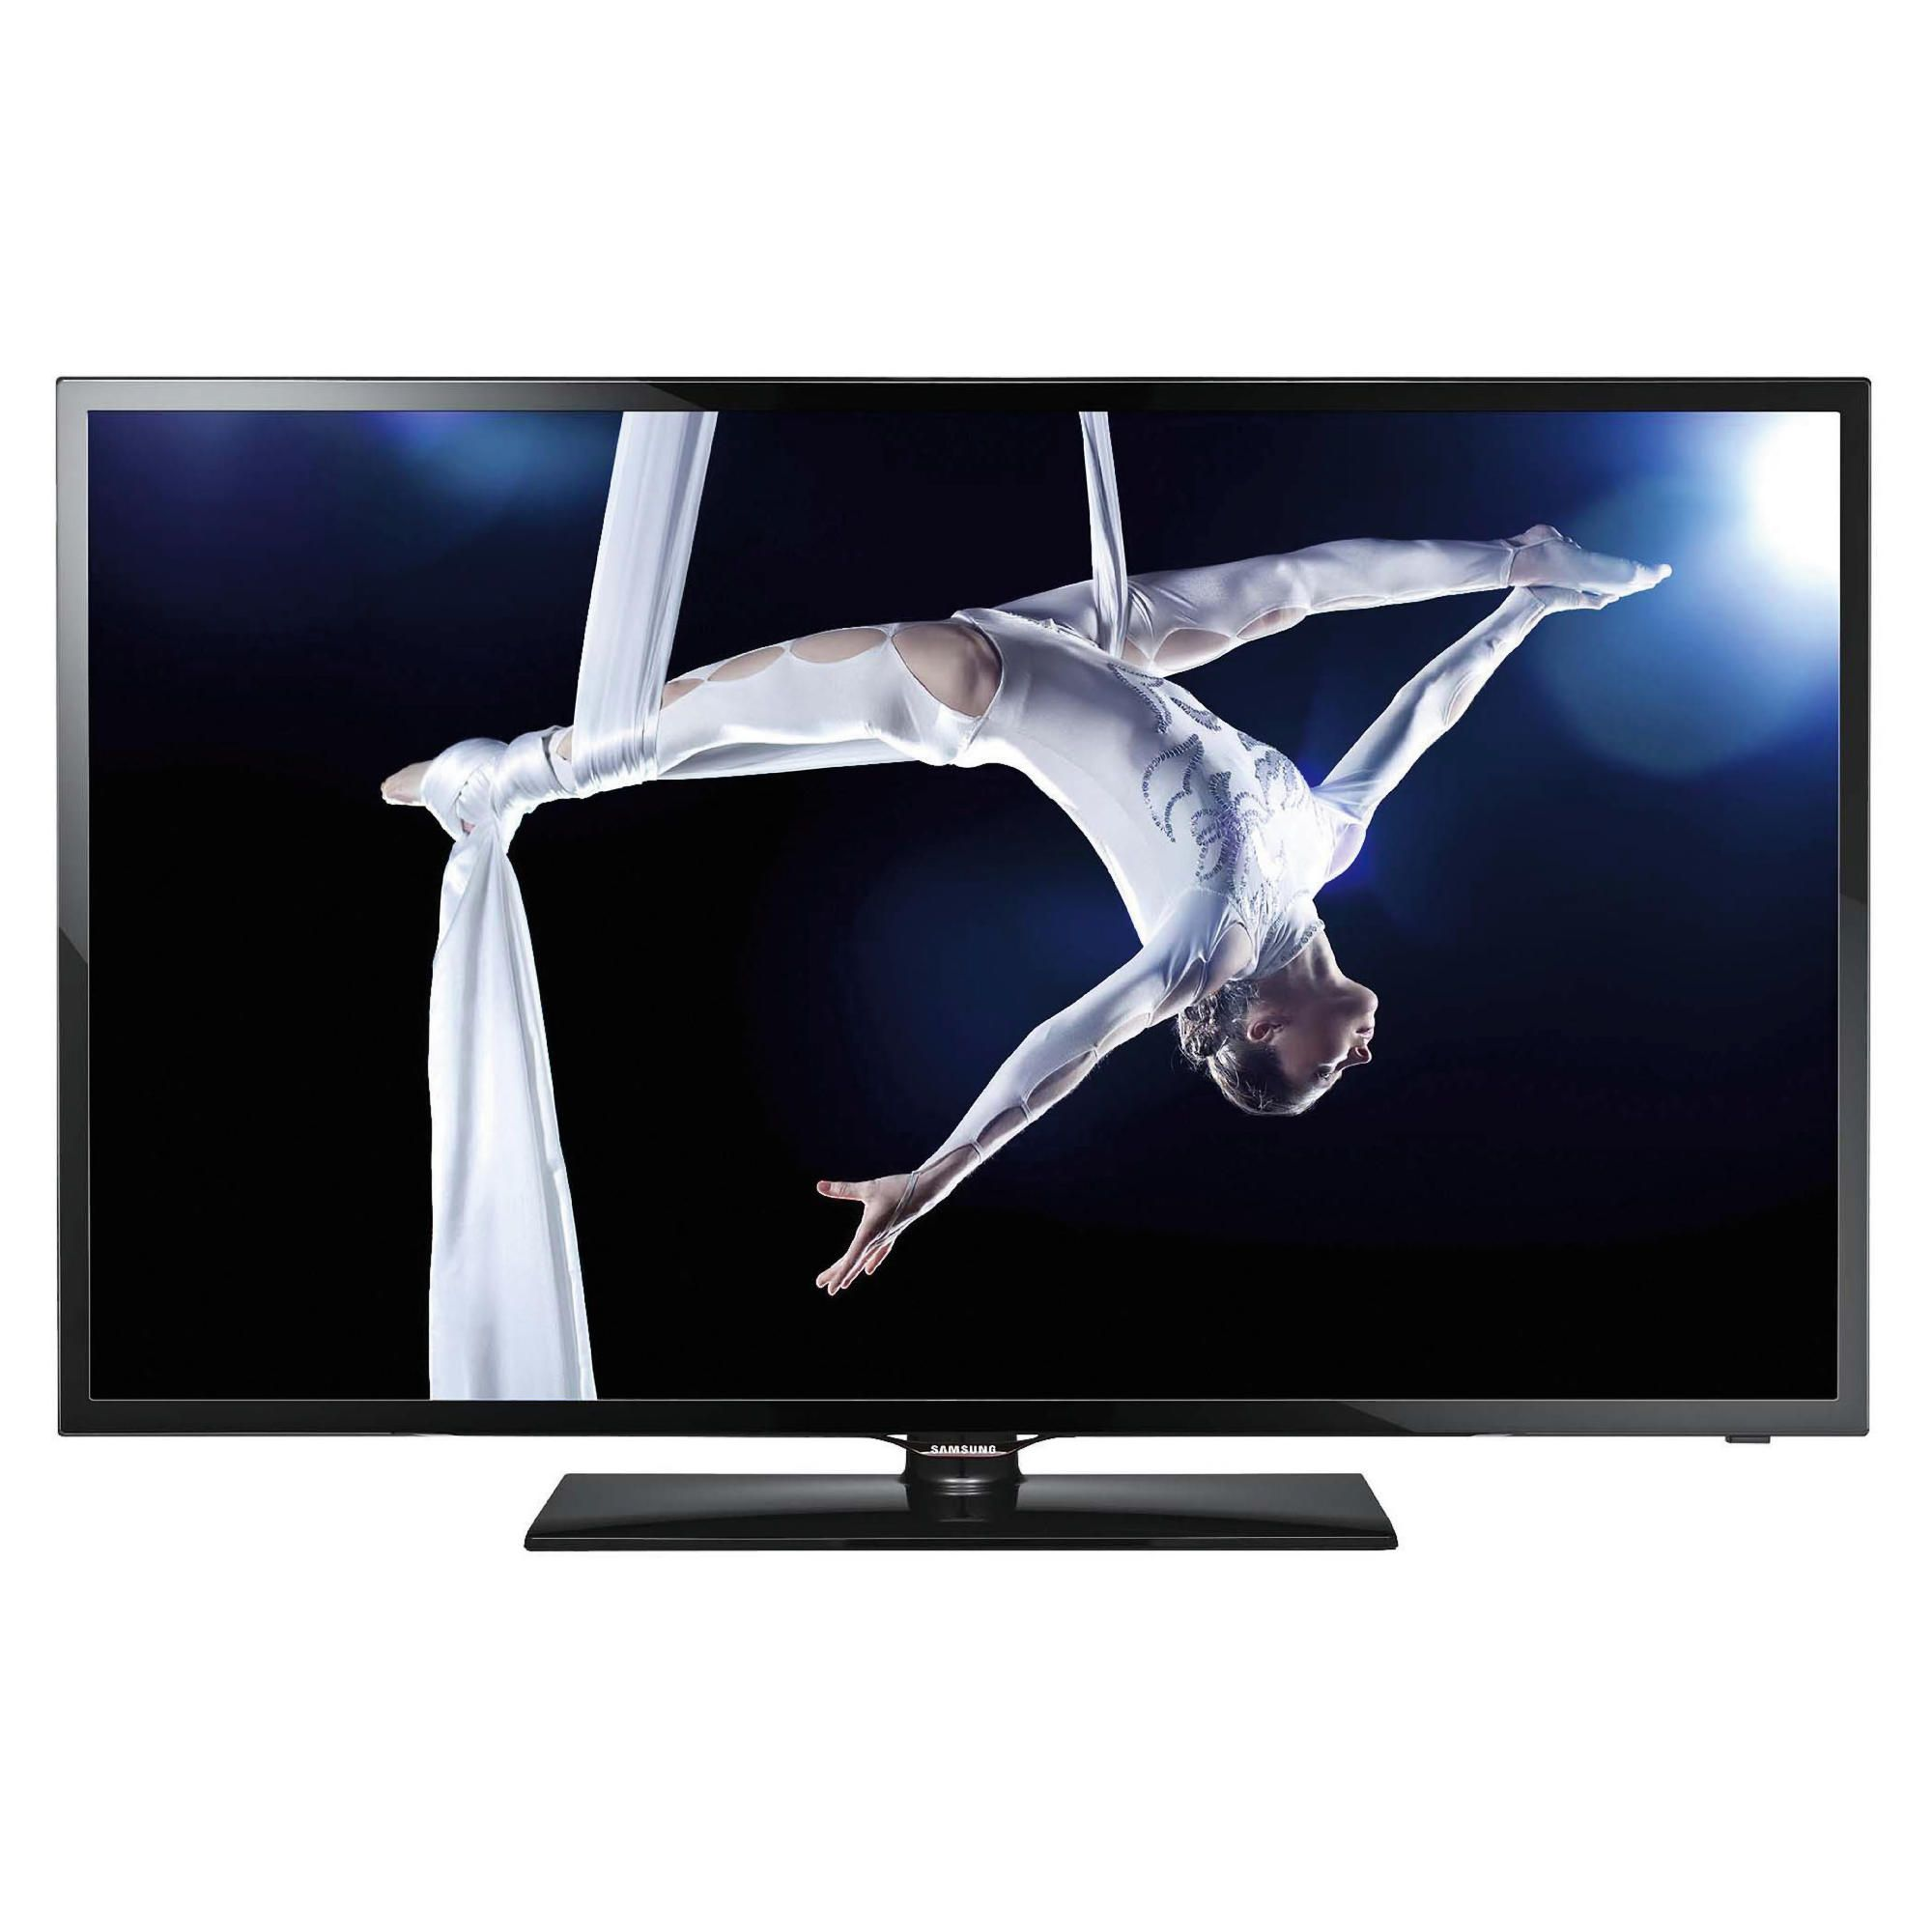 Samsung UE42F5000 42inch Full HD 1080p E-LED TV with Freeview HD